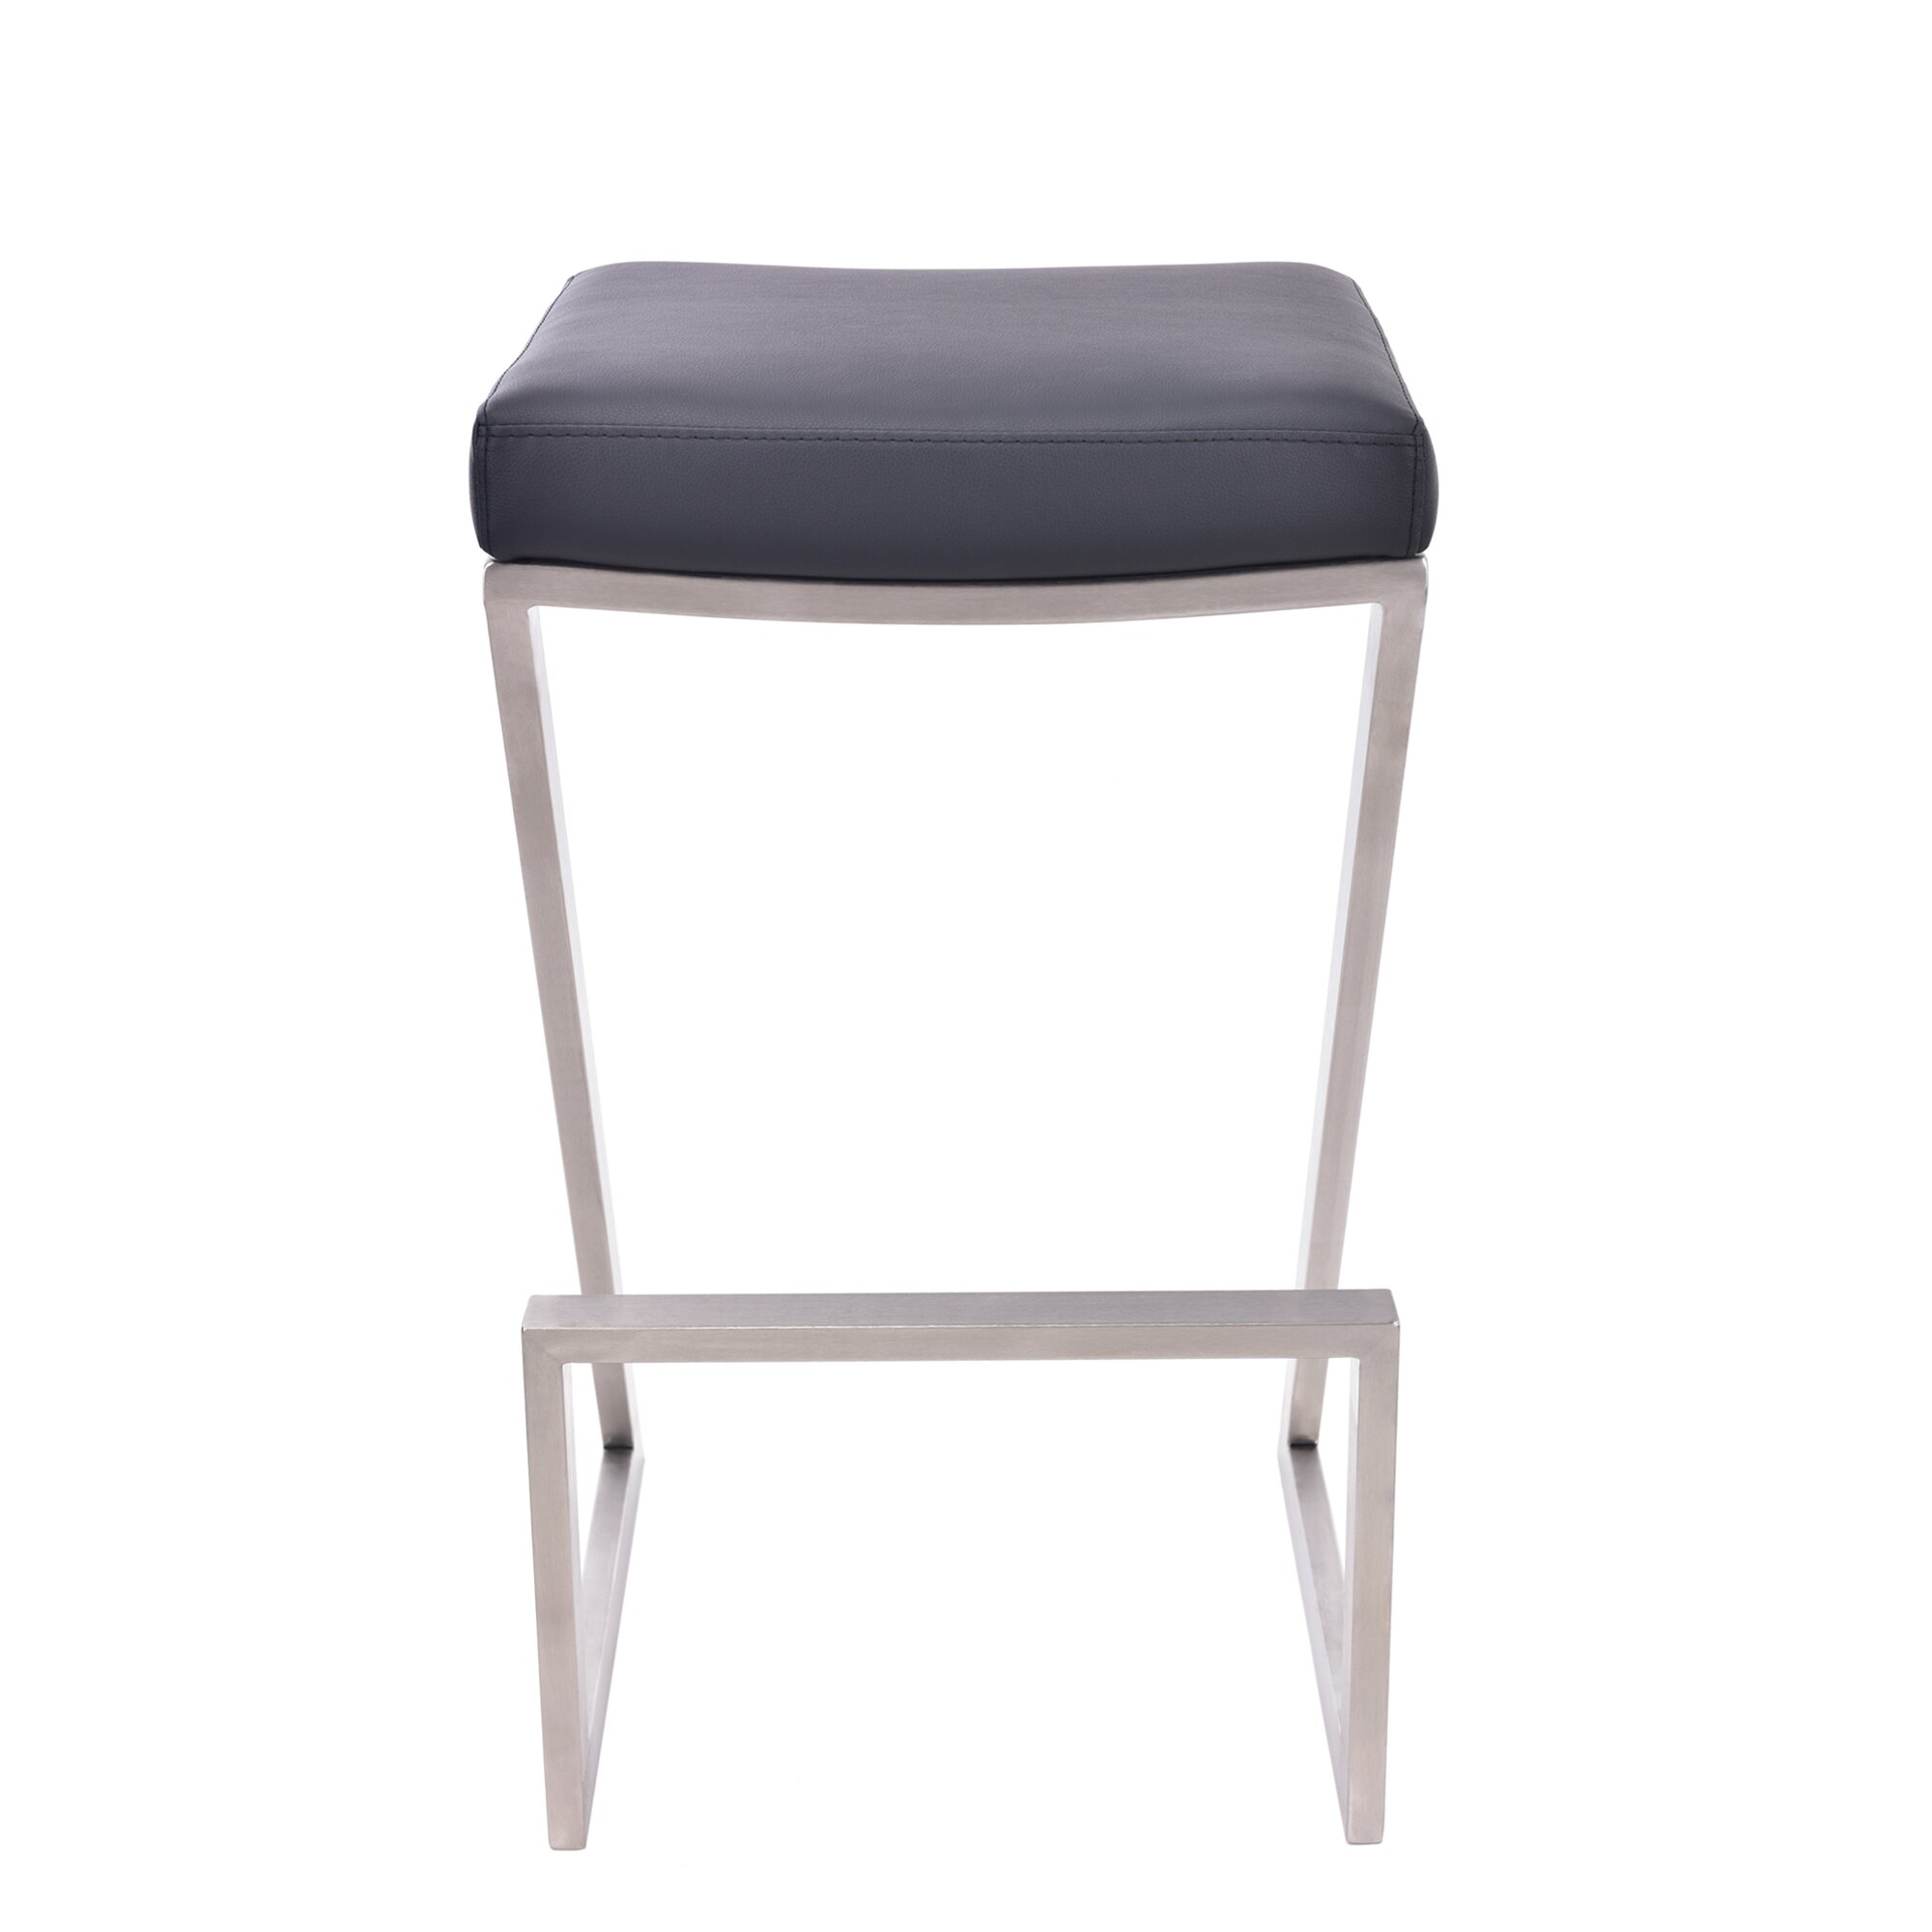 for stool amusing seat bar wayfair where design home ikea chairs swivel padded inch set counter buy height stools target stainless to steel backs arms with heights low